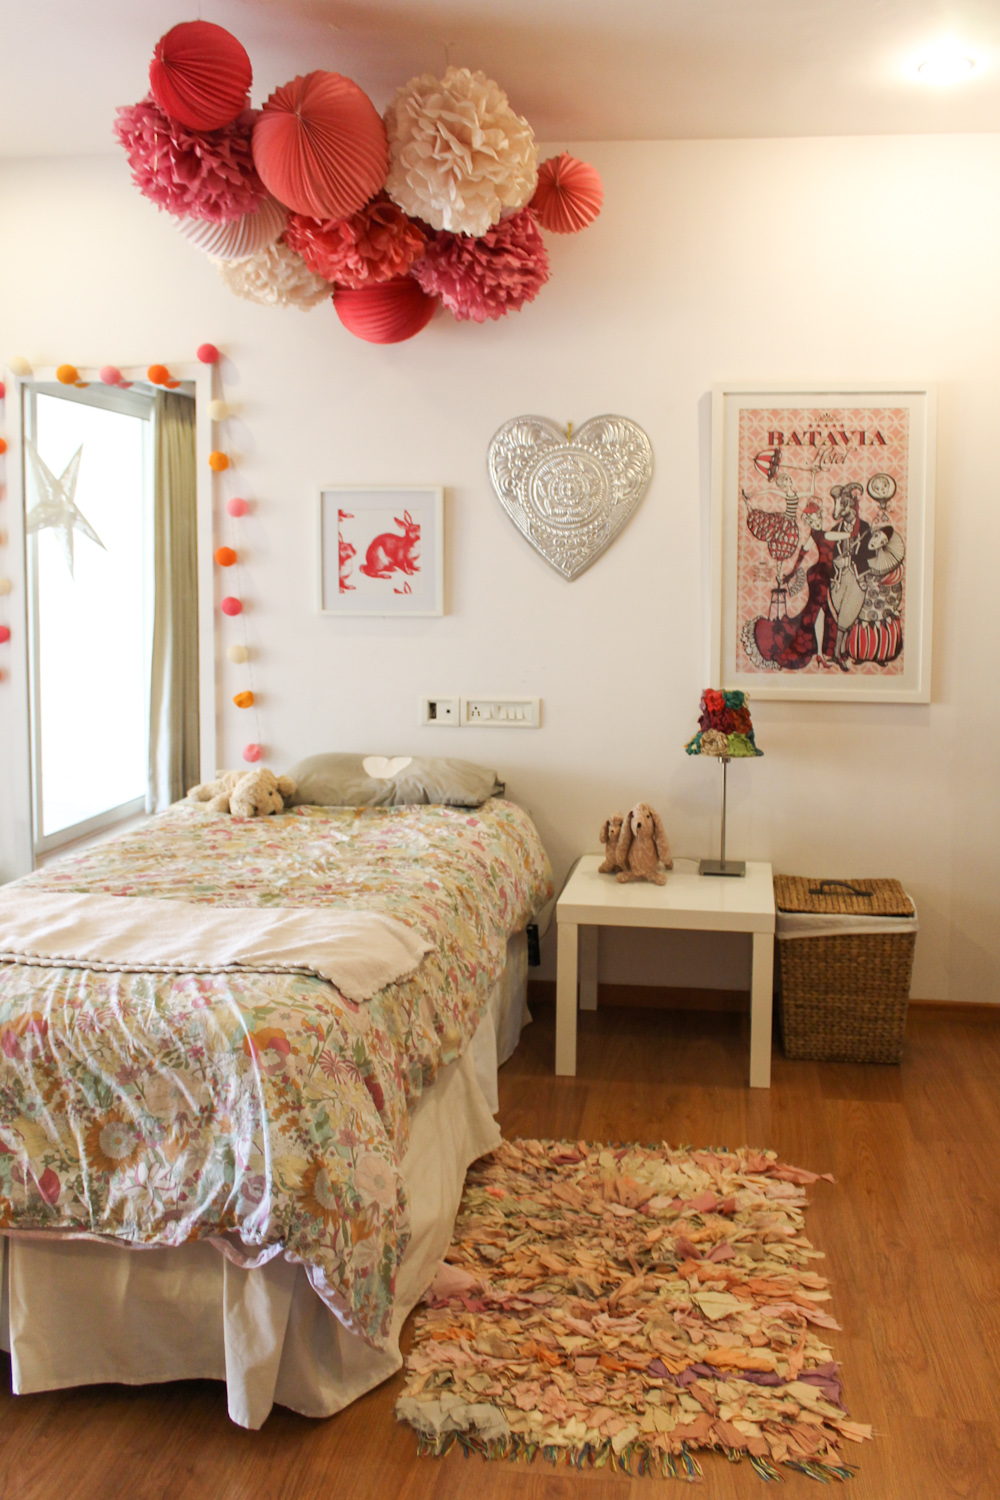 Kids Room with Pom-poms-20